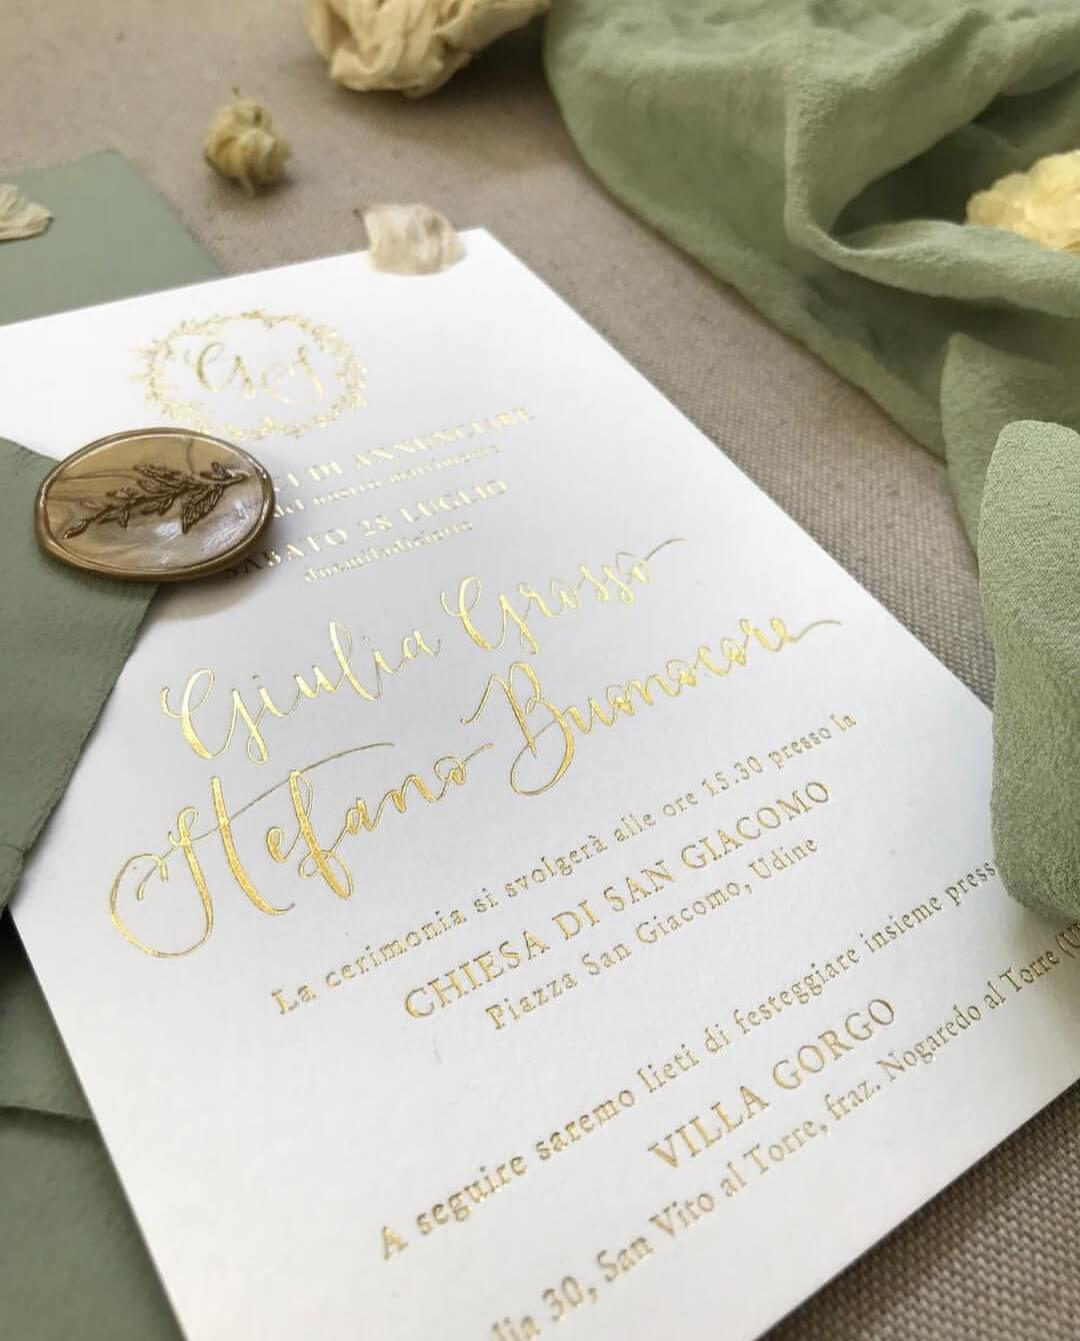 wedding stationery for wedding in italy giada marcuzzi wedding planner (1)